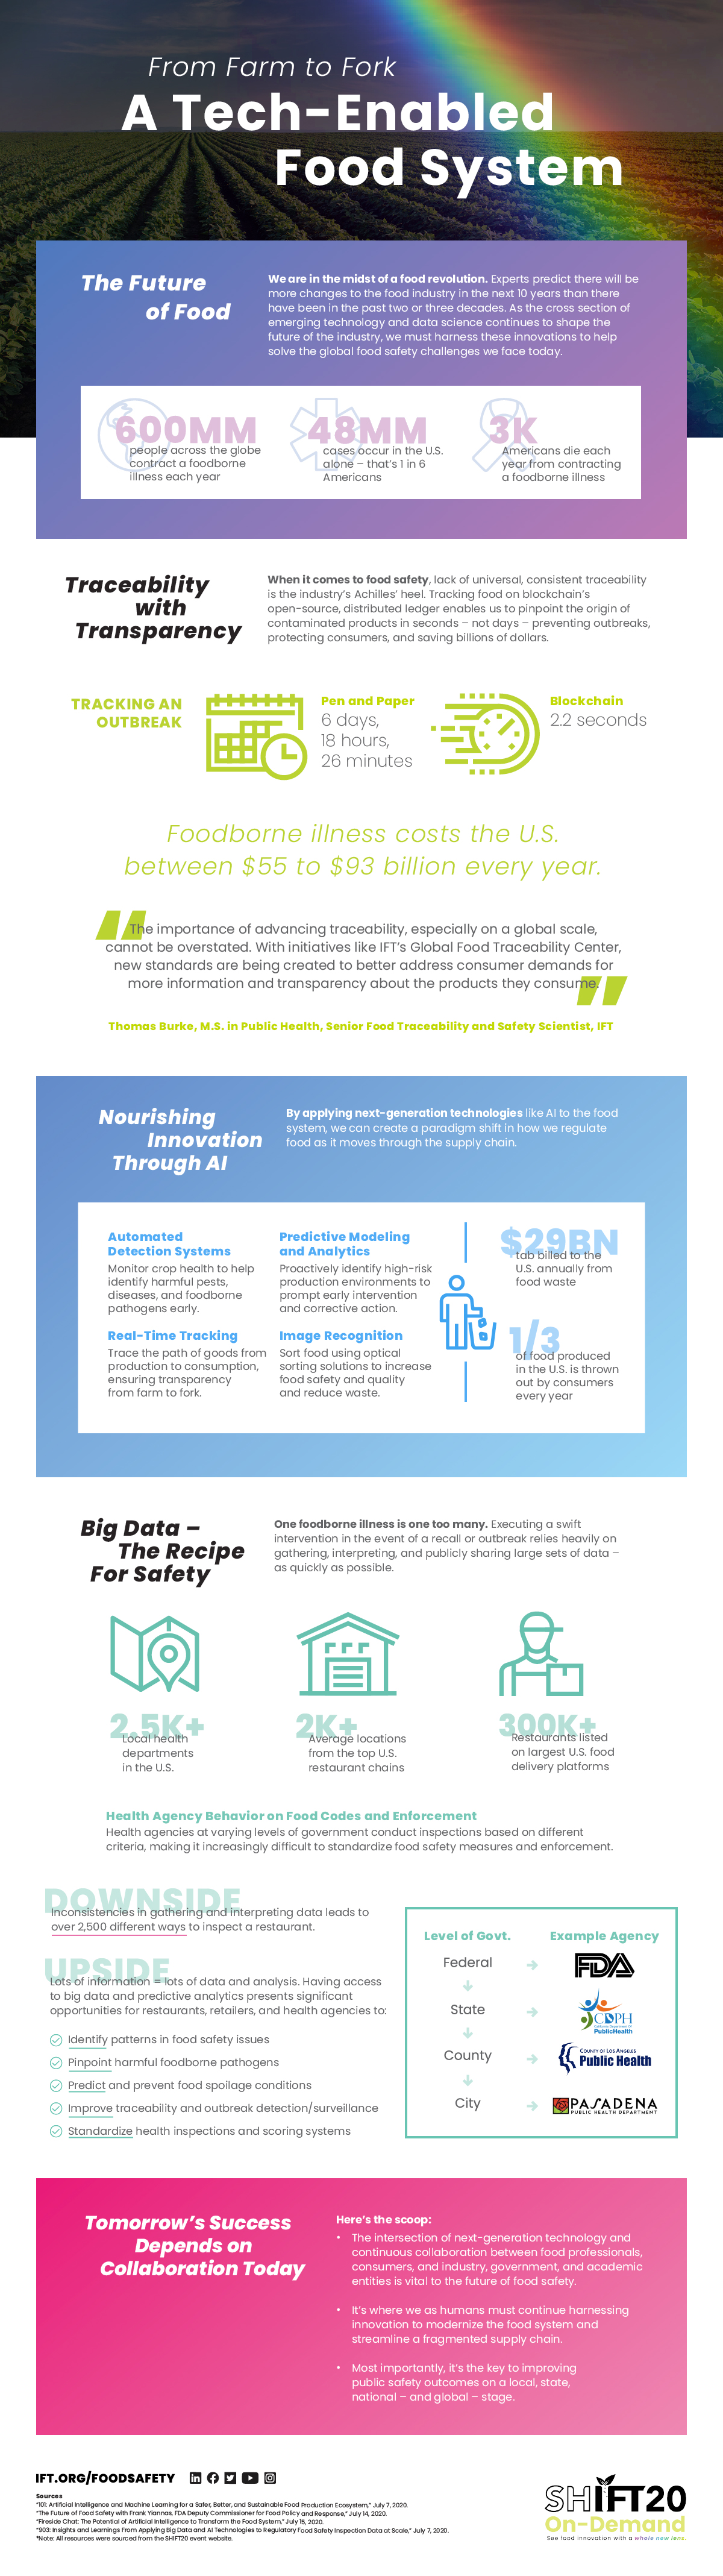 Future of Food, Food Safety, Traceability, Innovation Infographic